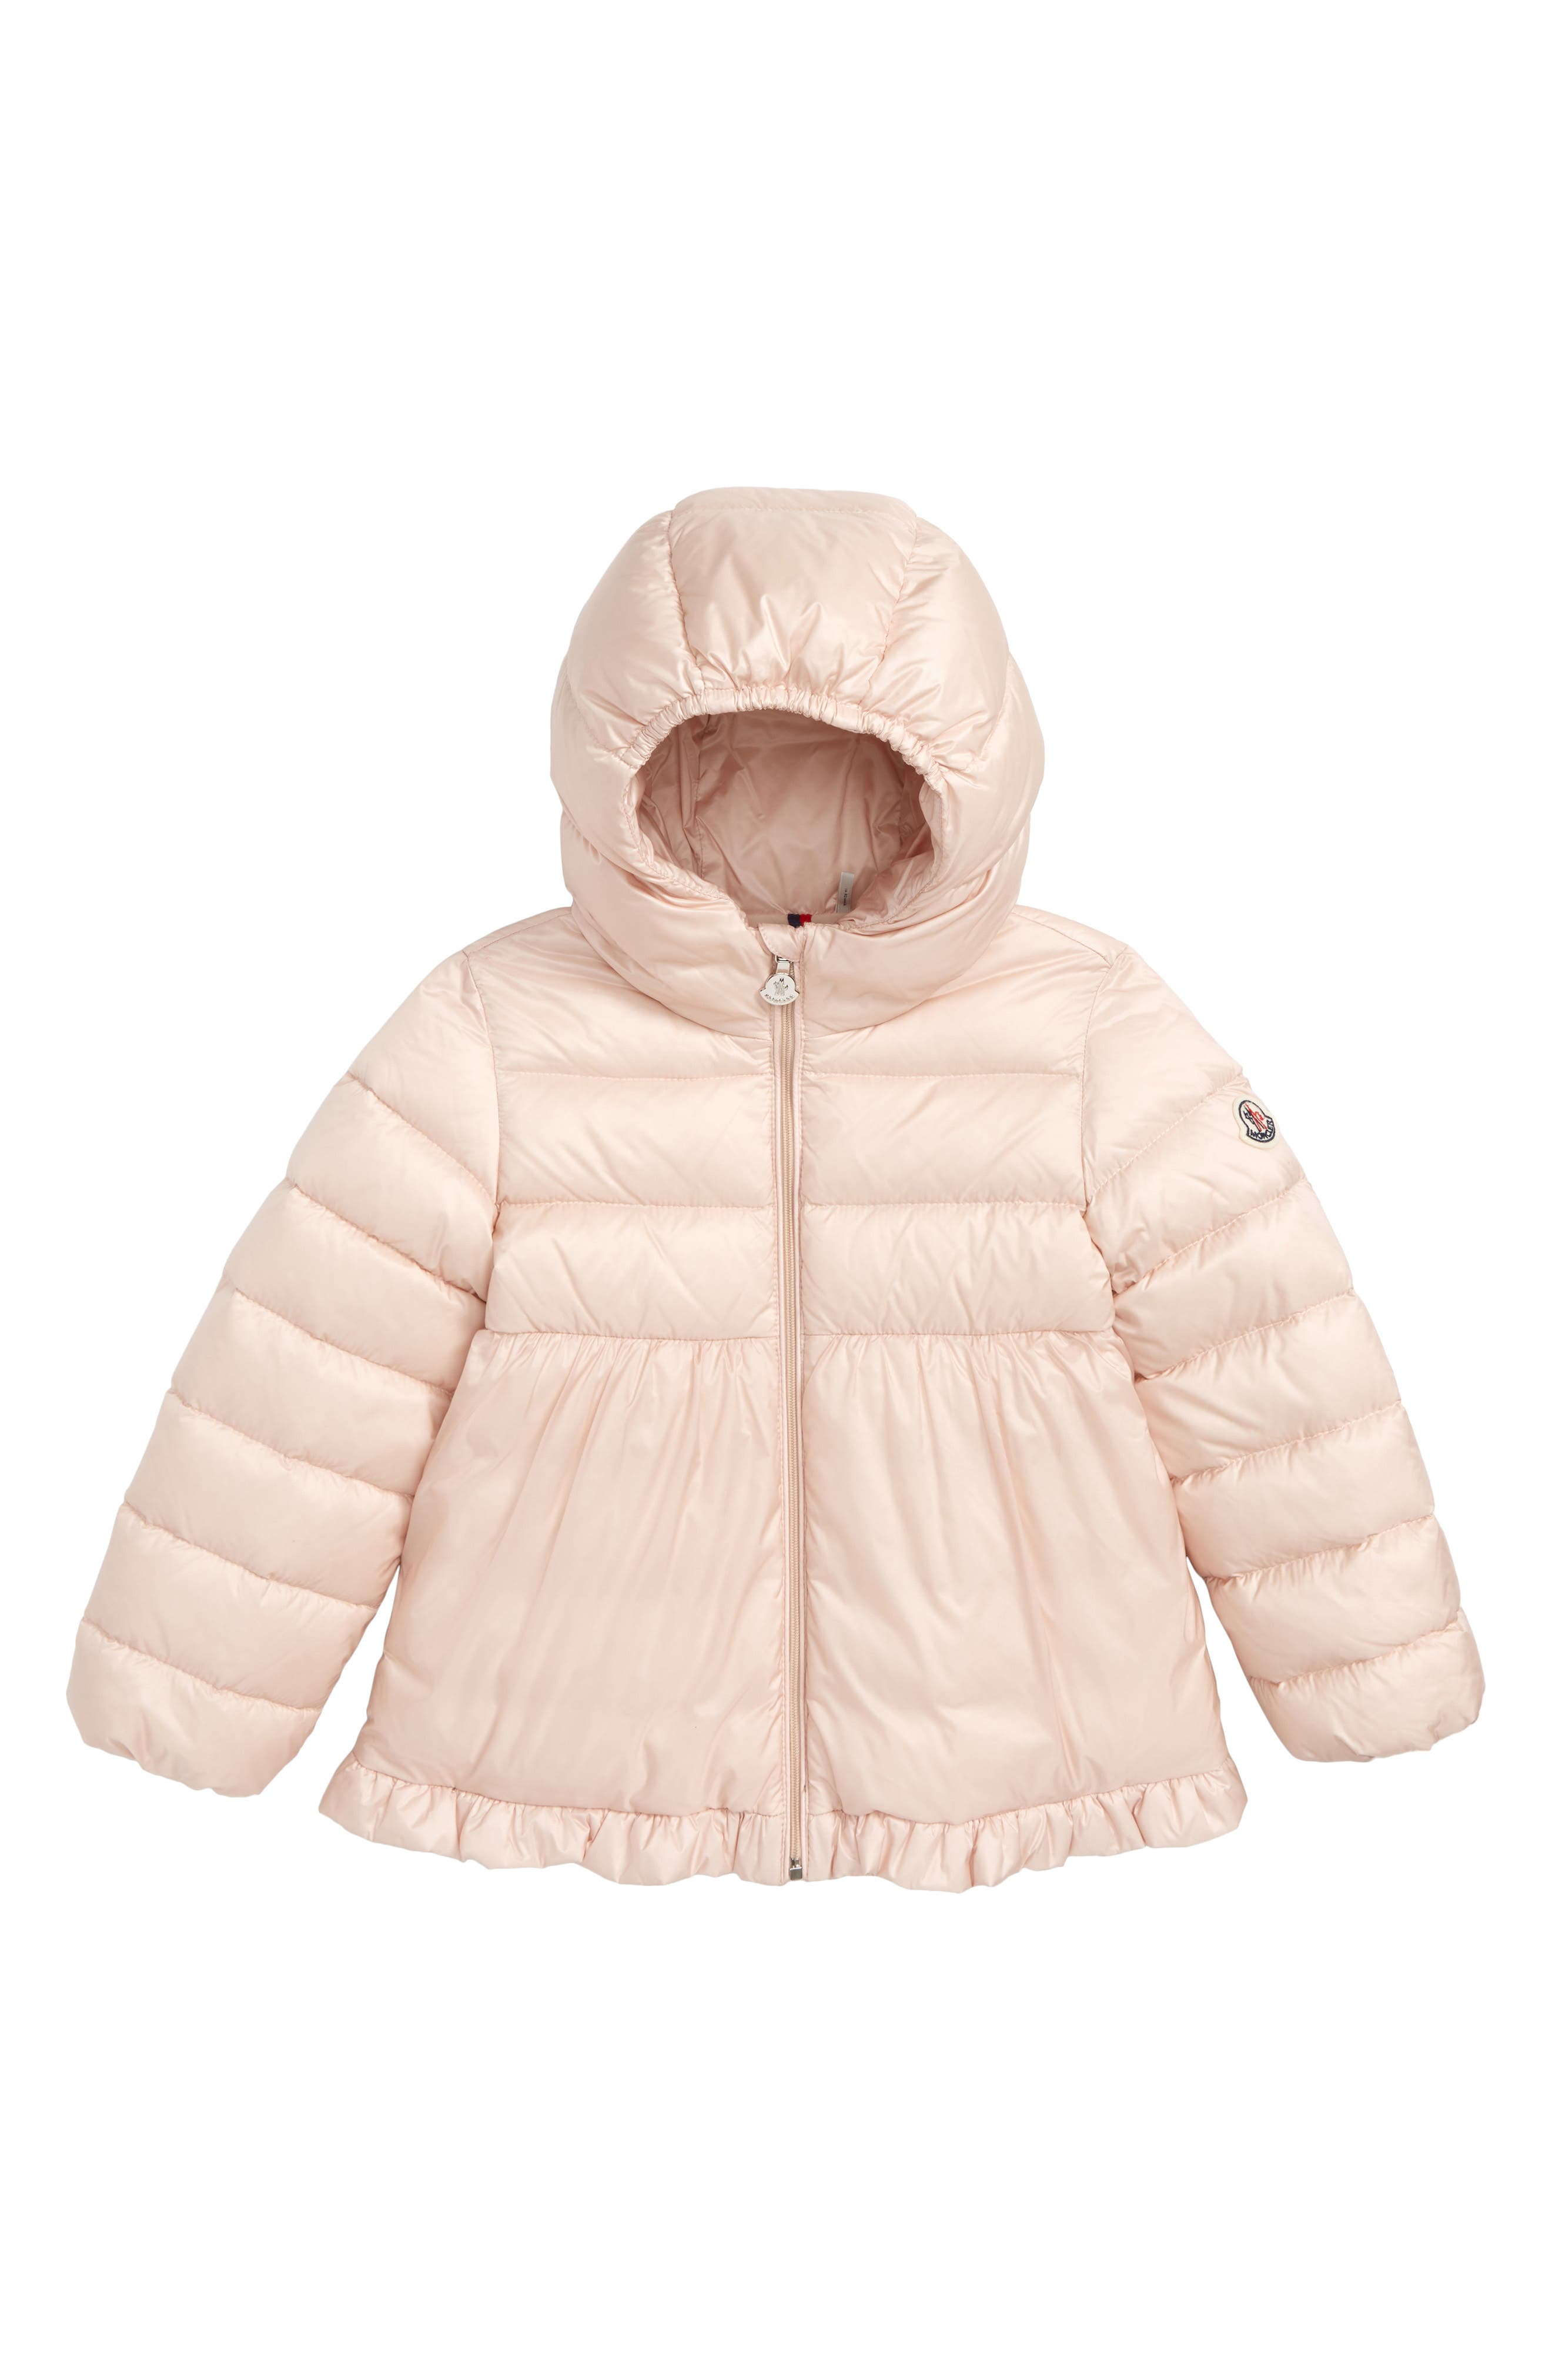 MONCLER, Odile Insulated Hooded Down Jacket, Main thumbnail 1, color, LIGHT PINK